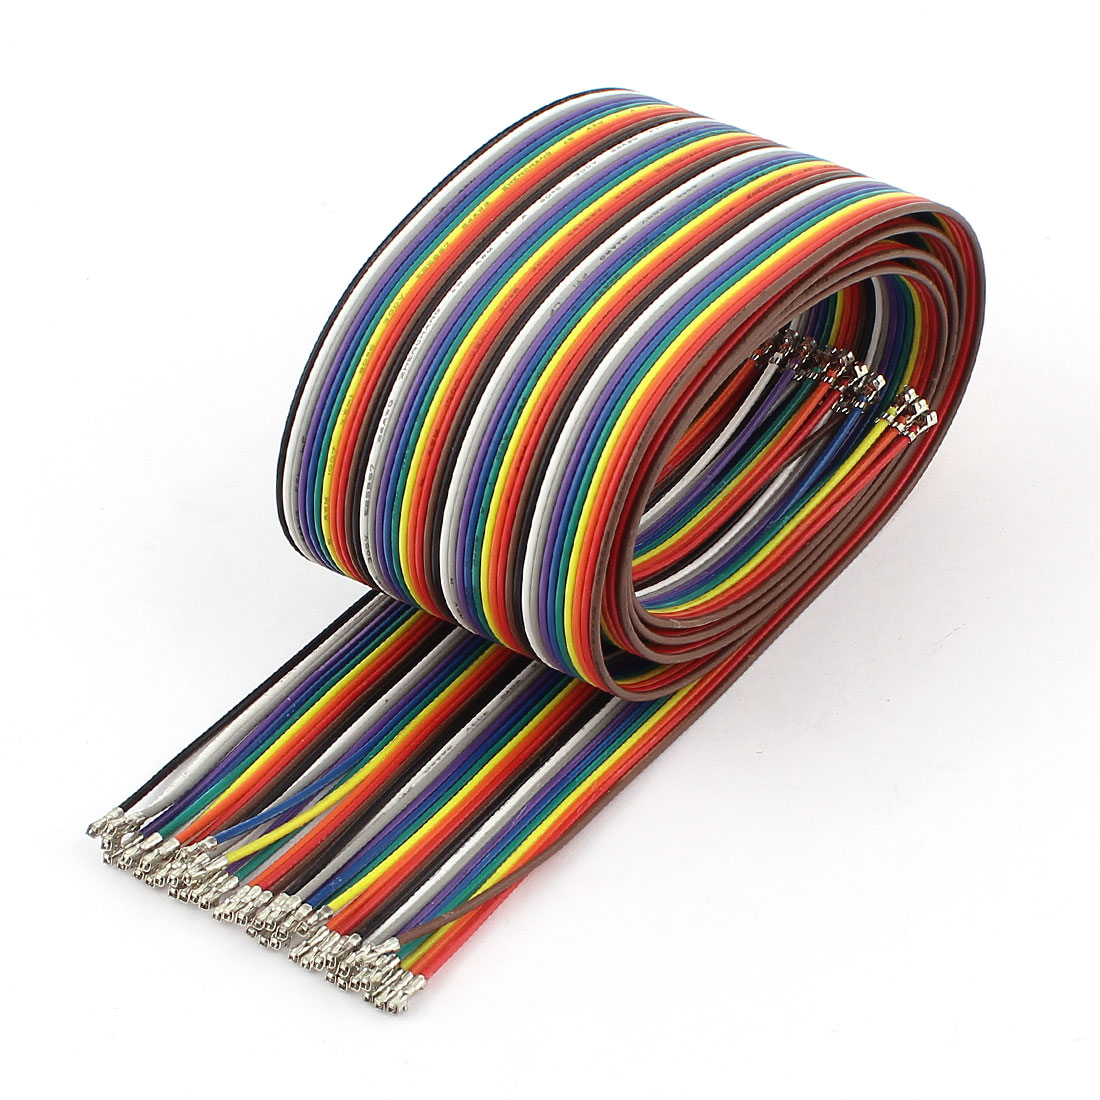 XH2.54 40P 1M 2.54mm Flat Rainbow Ribbon Wire Male to Male Connector